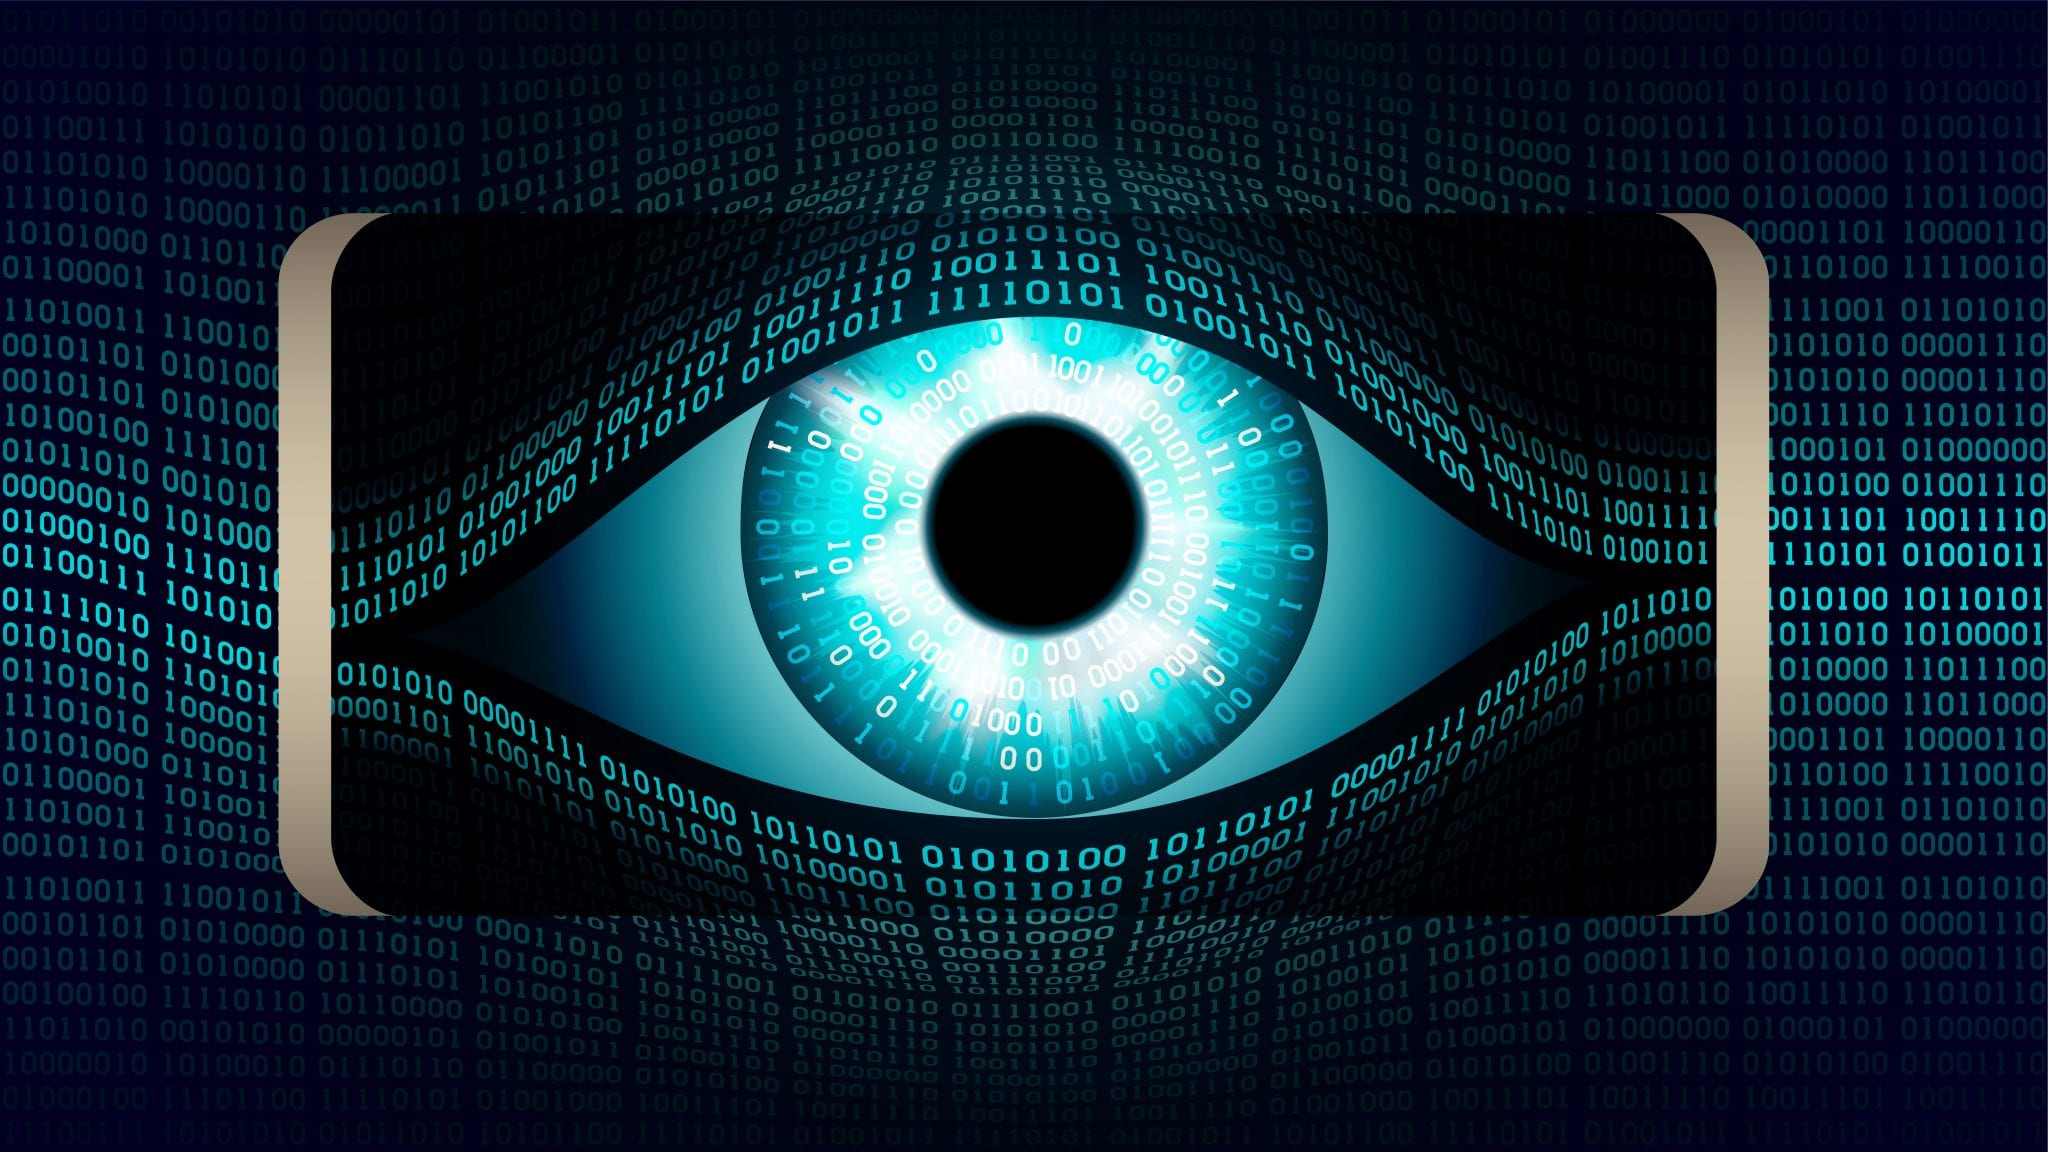 Protecting health and data privacy